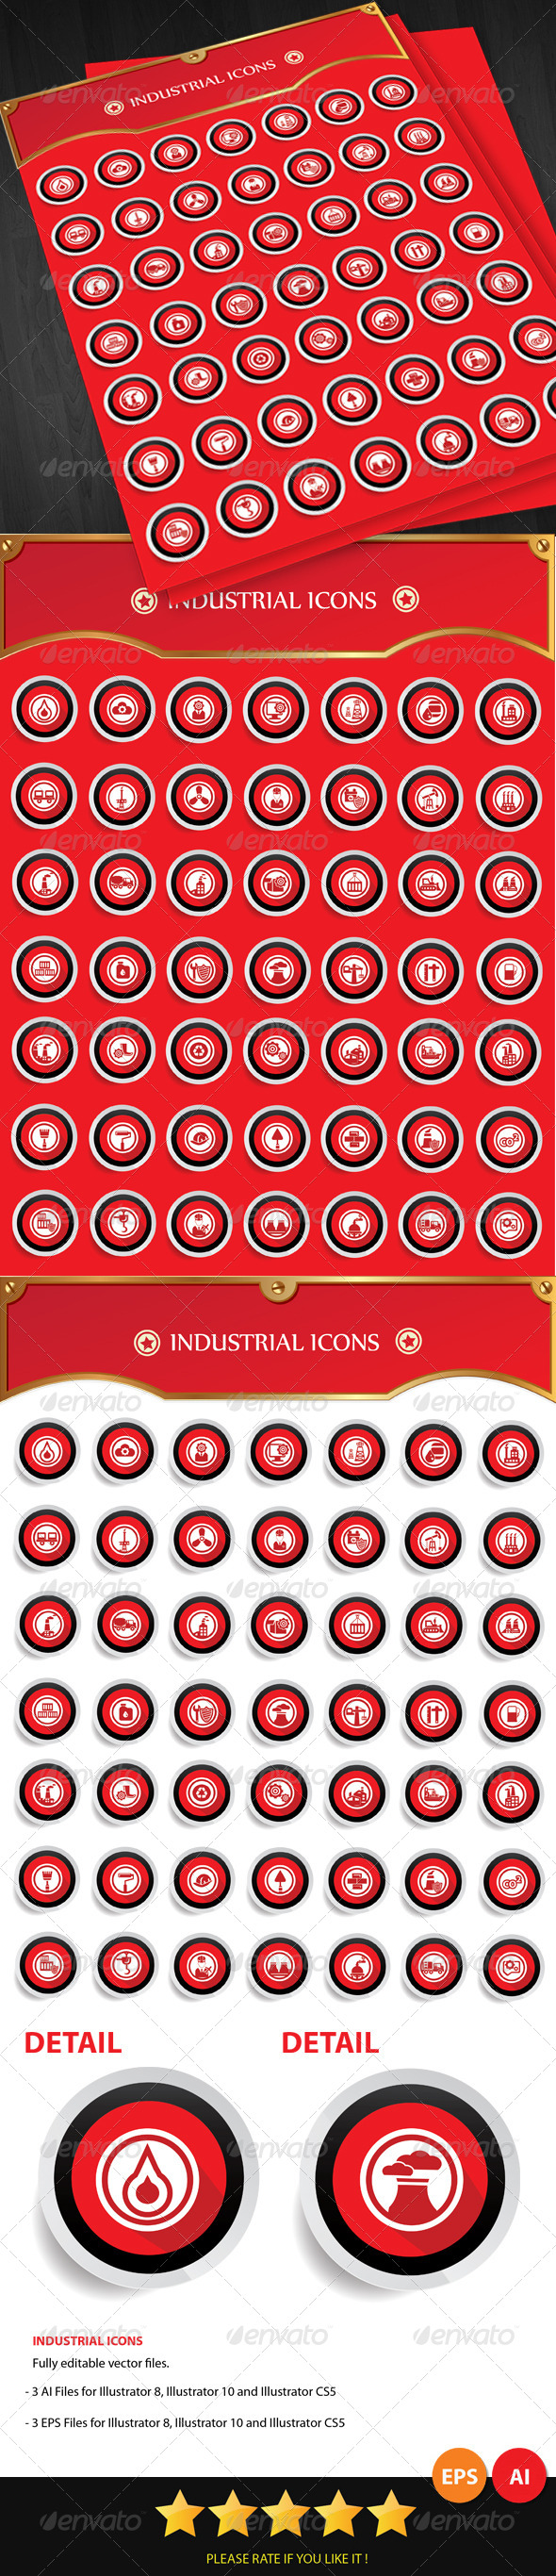 GraphicRiver Industrial Icons 6389844